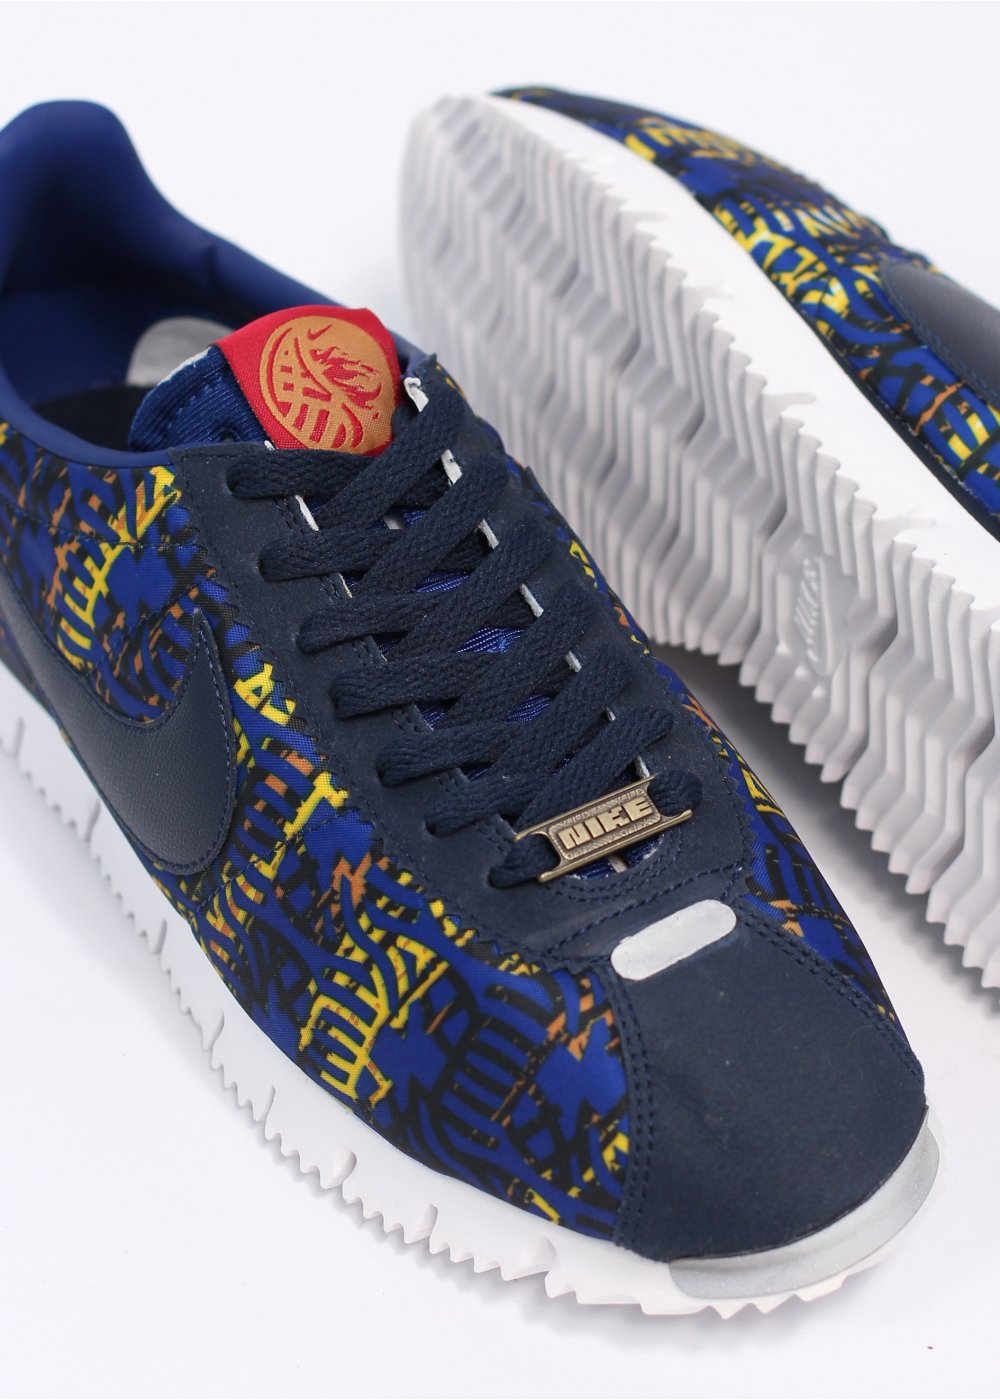 15a9b3b12e99 ... Cortez NM Premium YOTH Year Of The Horse QS Trainers - Obsidian Royal  Blue ...